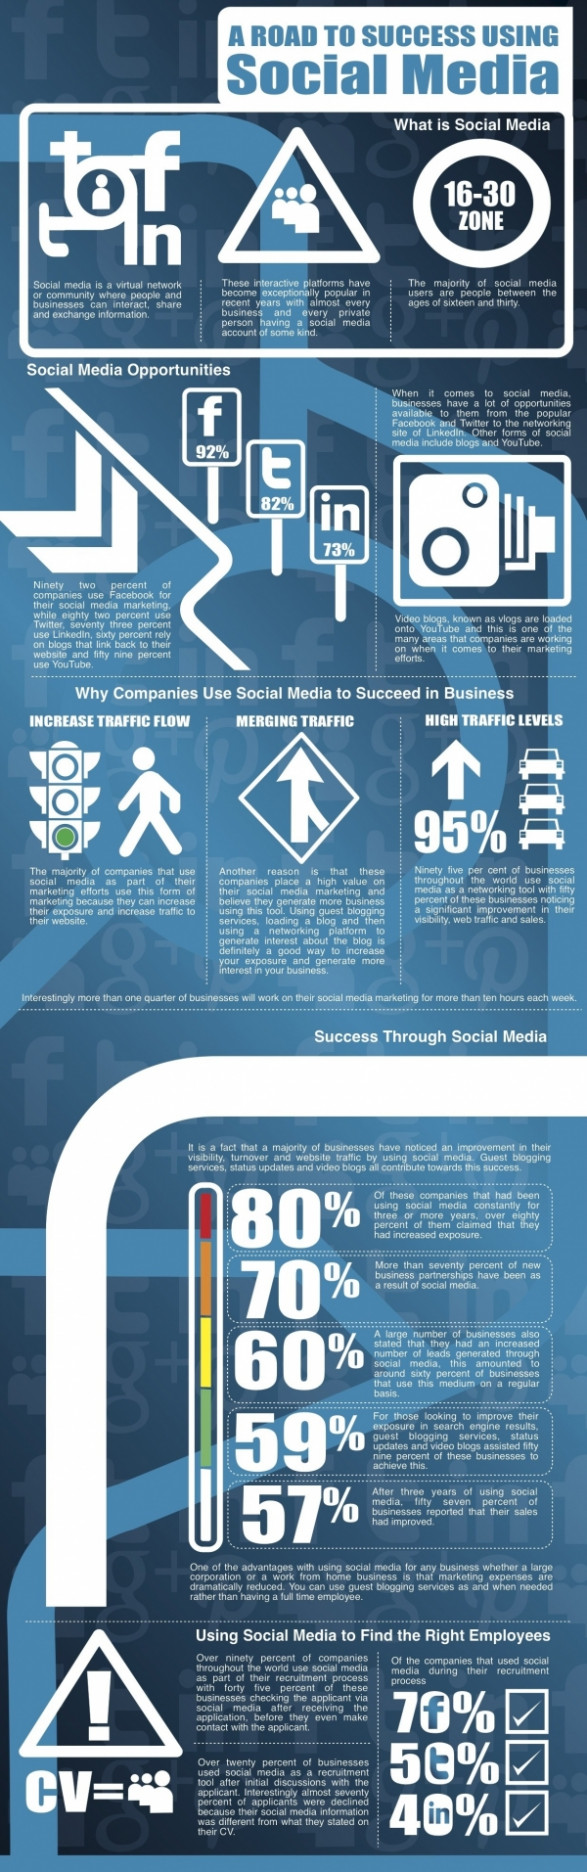 The Road to Success Using Social Media